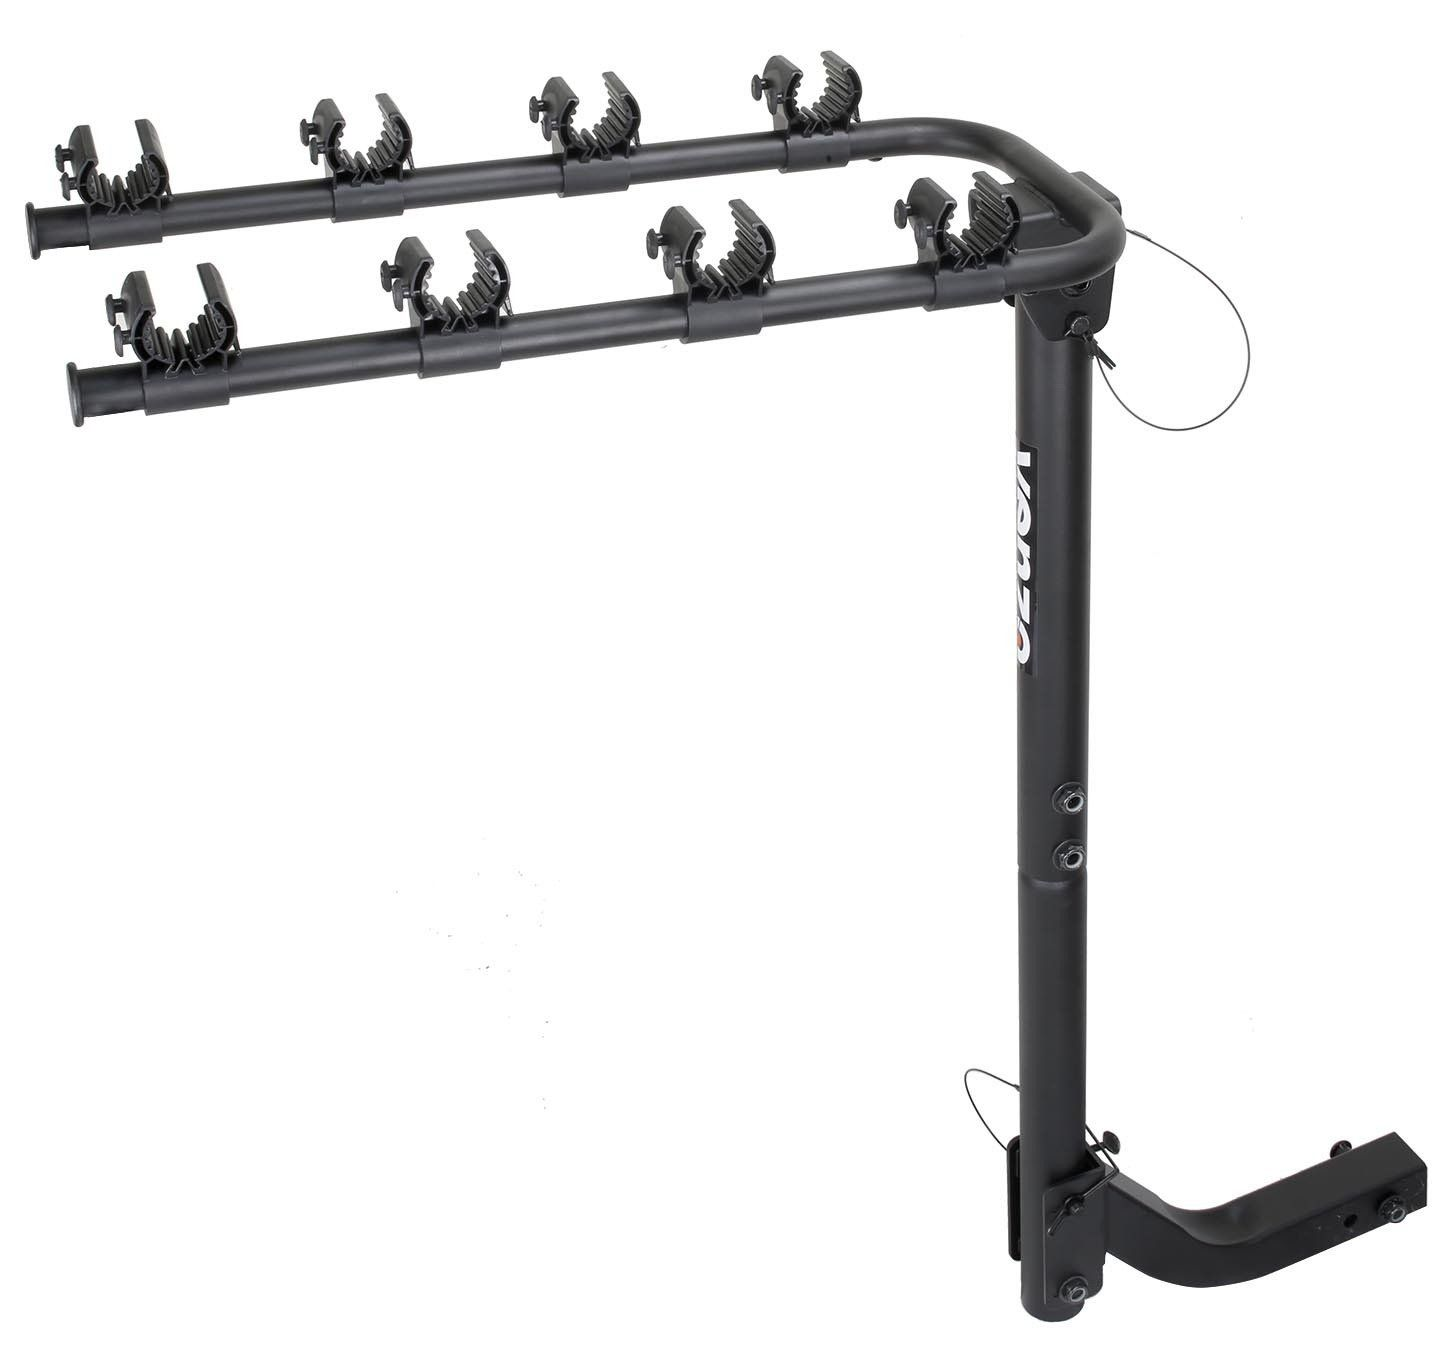 Venzo 4 Bicycle Bike Rack Hitch Mount Car Carrier 2